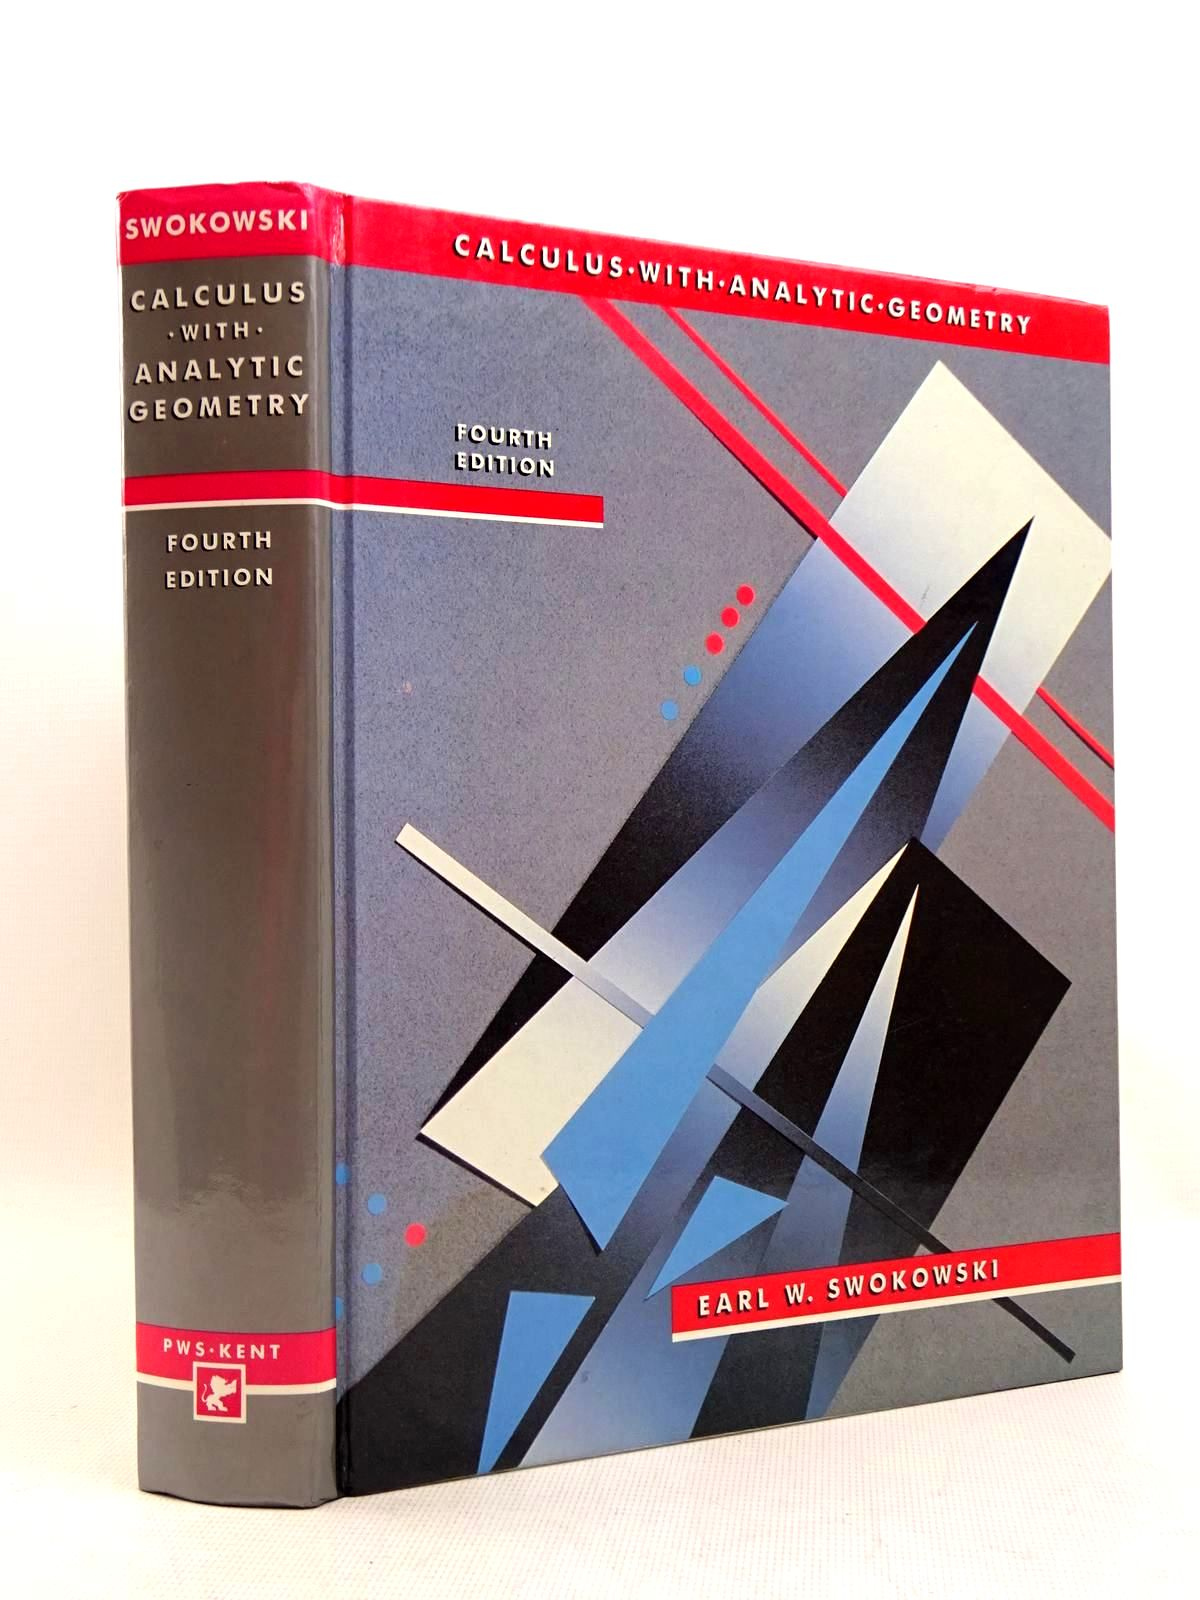 Photo of CALCULUS WITH ANALYTIC GEOMETRY written by Swokowski, Earl W. published by Pws-Kent (STOCK CODE: 1317560)  for sale by Stella & Rose's Books